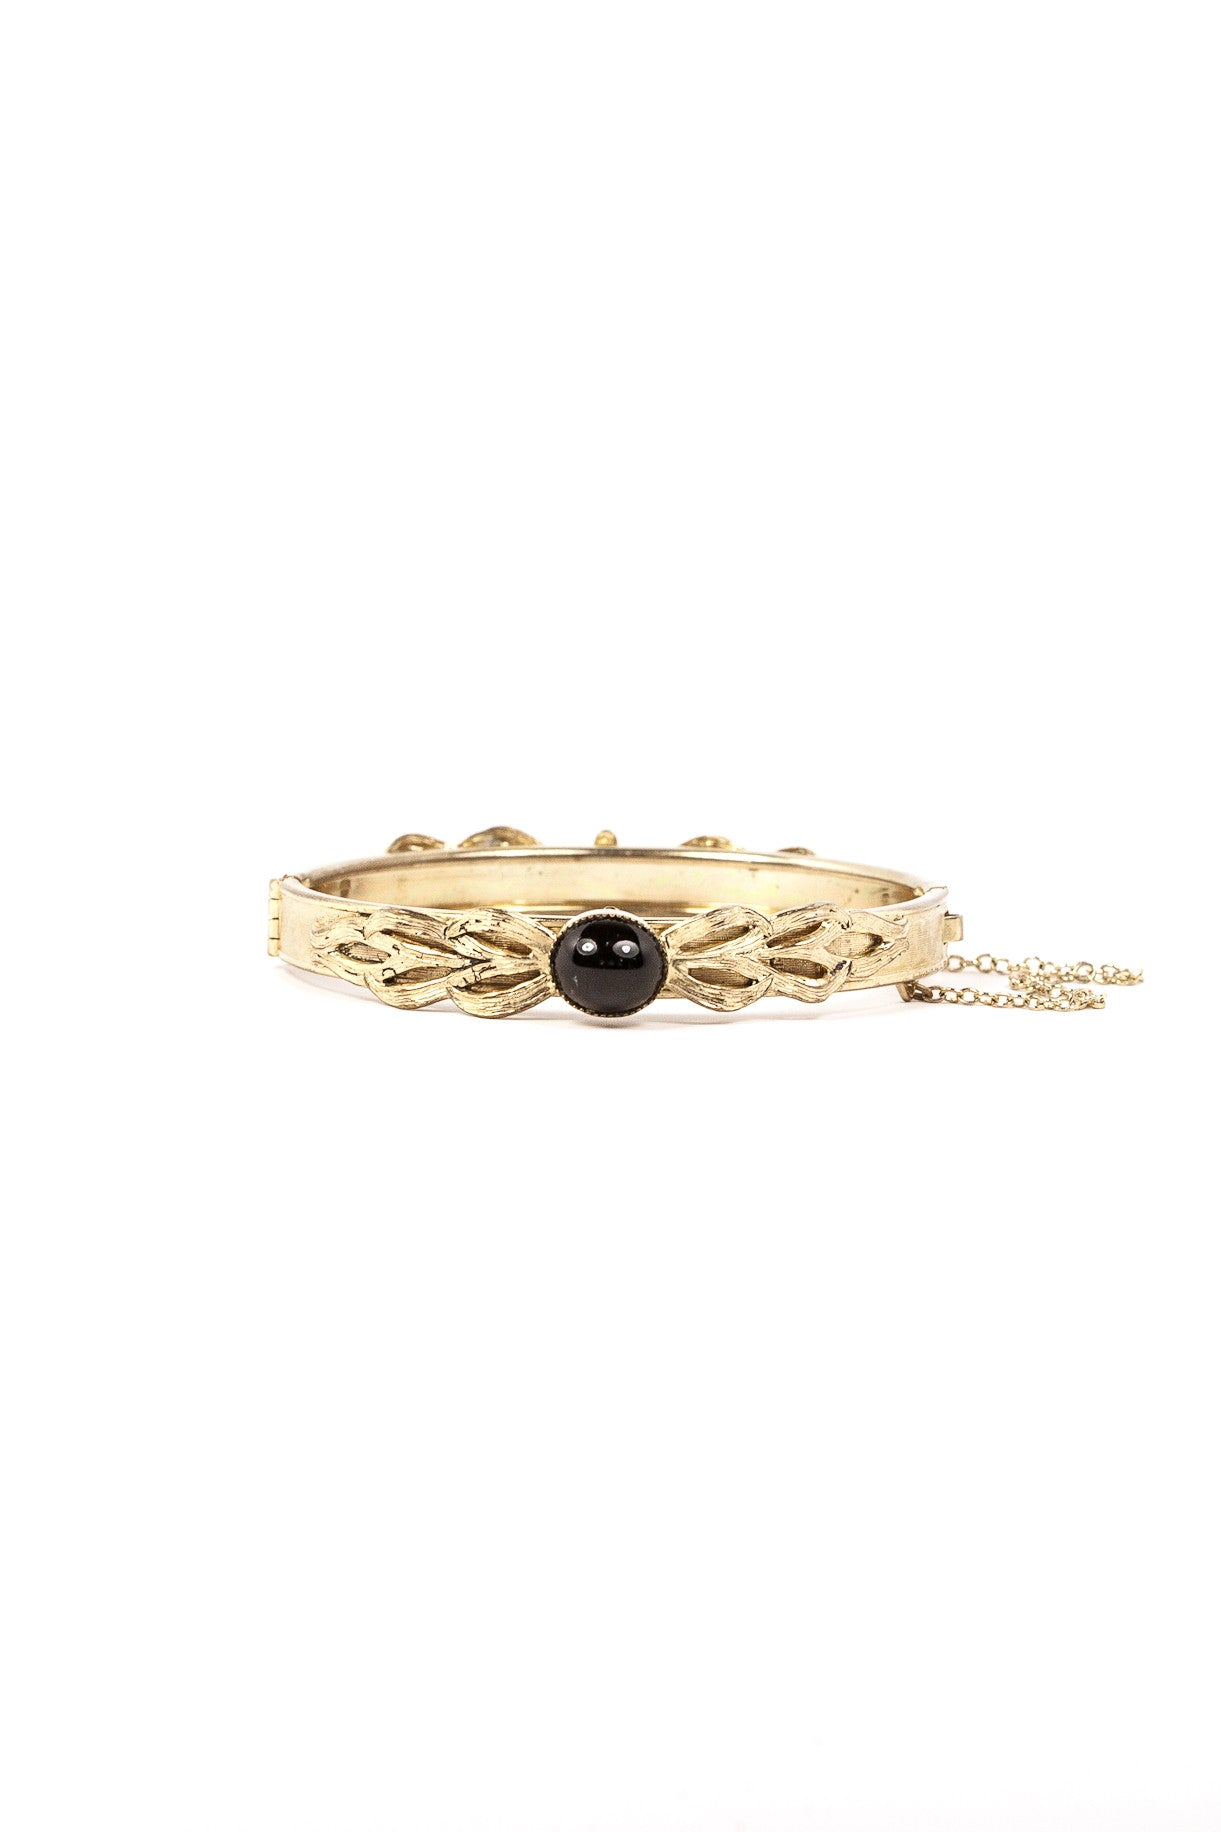 50's__Whiting and Davis__Dainty Onyx Bangle Bracelet